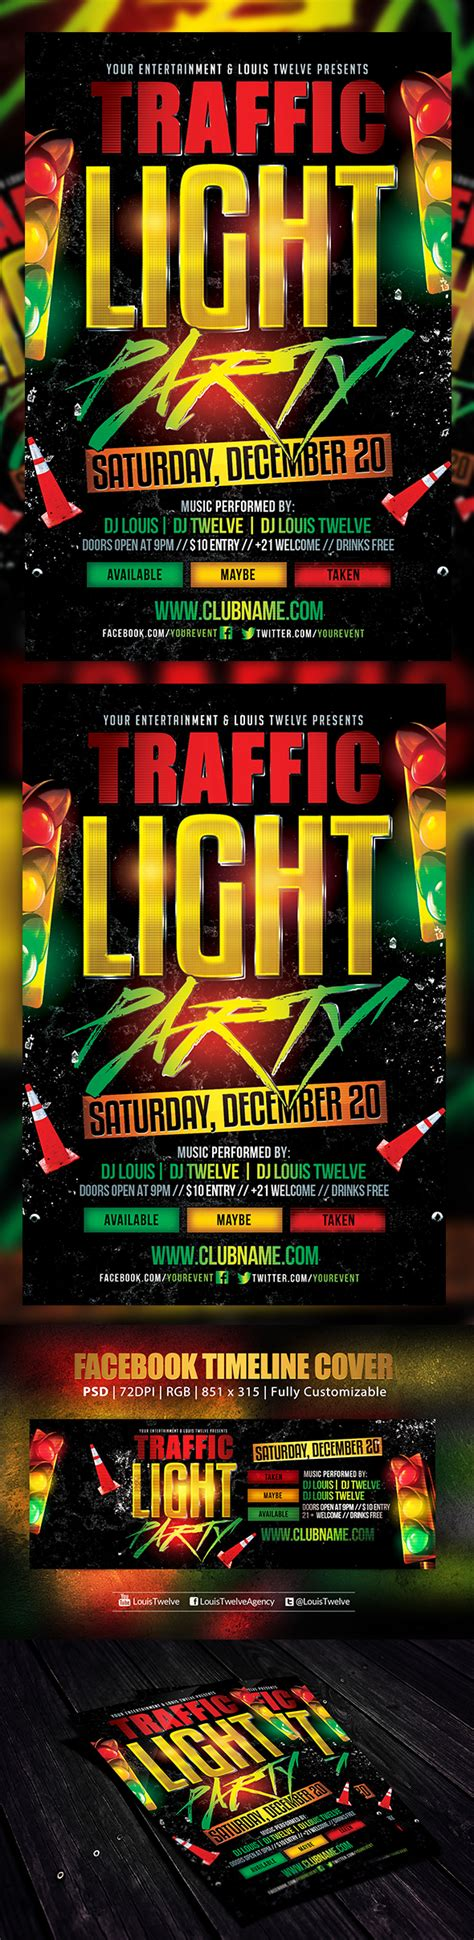 Traffic Light Party 2 Flyer Facebook Cover On Behance Lights Flyer Template